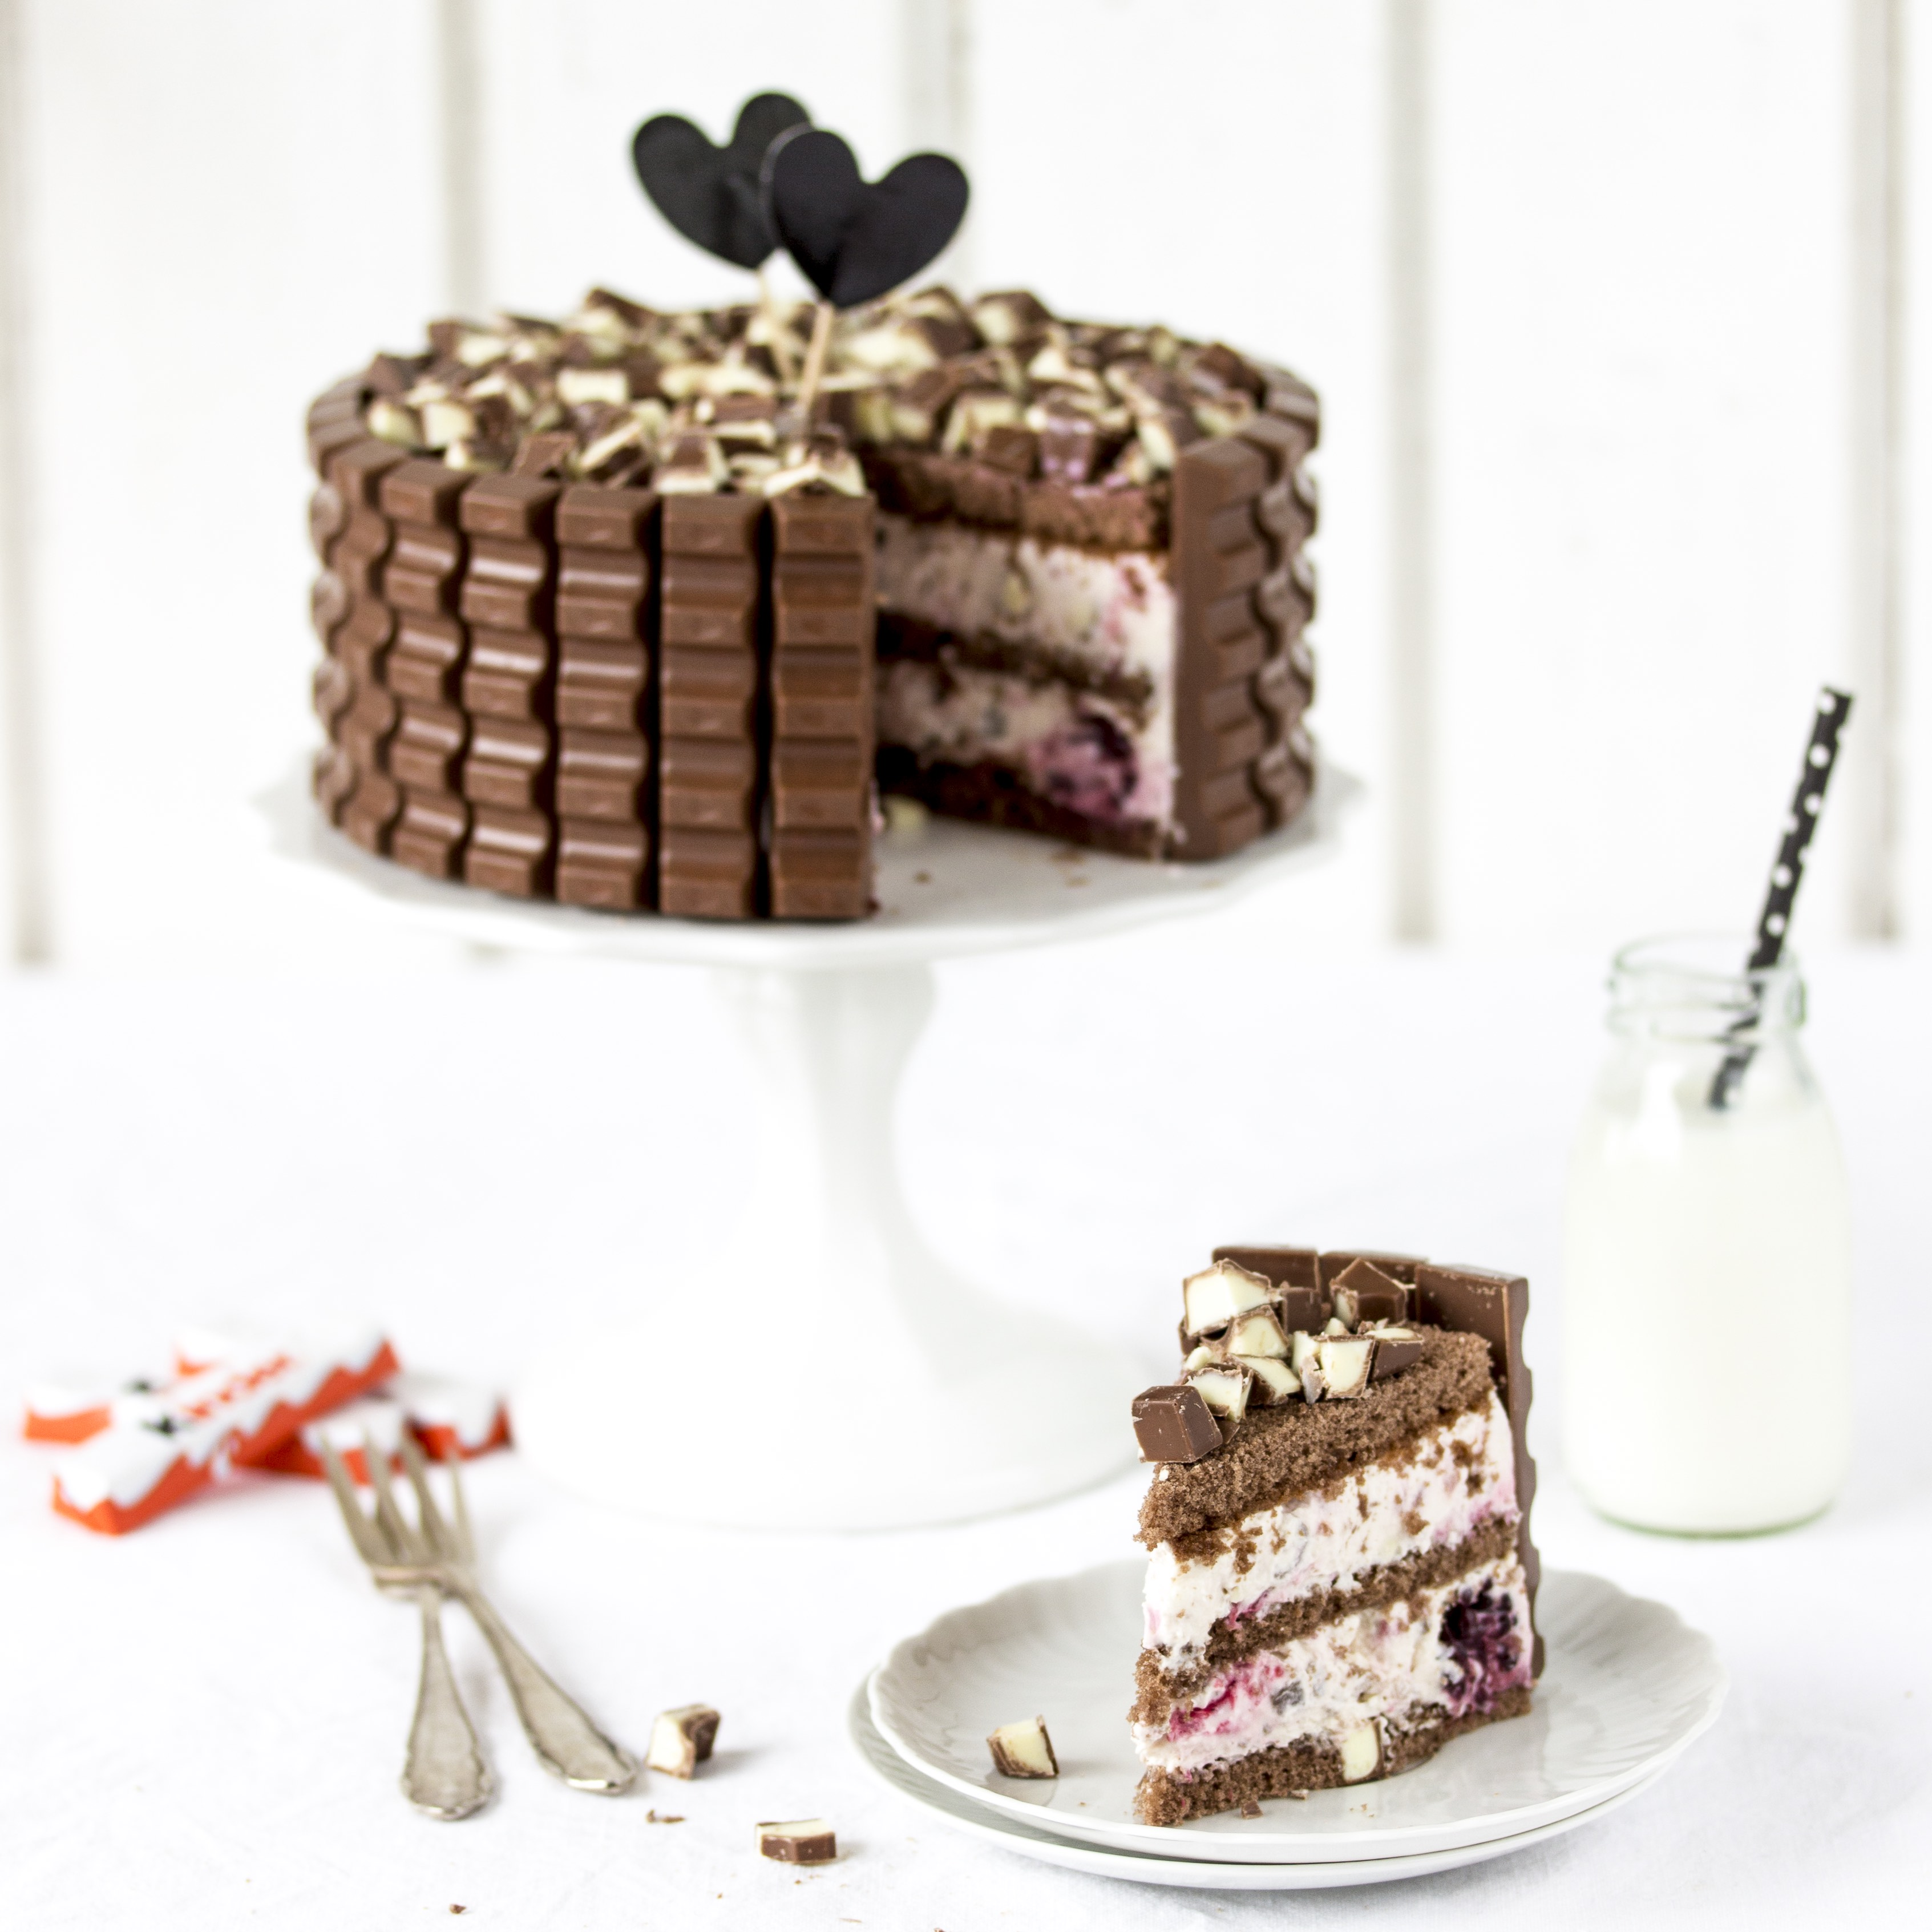 kinder schokolade torte mit beeren eine verlosung emma. Black Bedroom Furniture Sets. Home Design Ideas